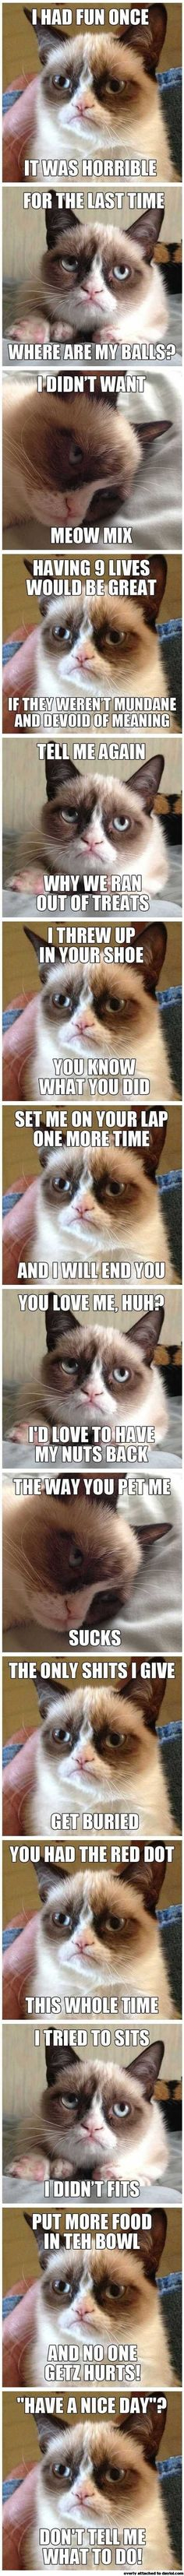 Grumpy Cat compilation